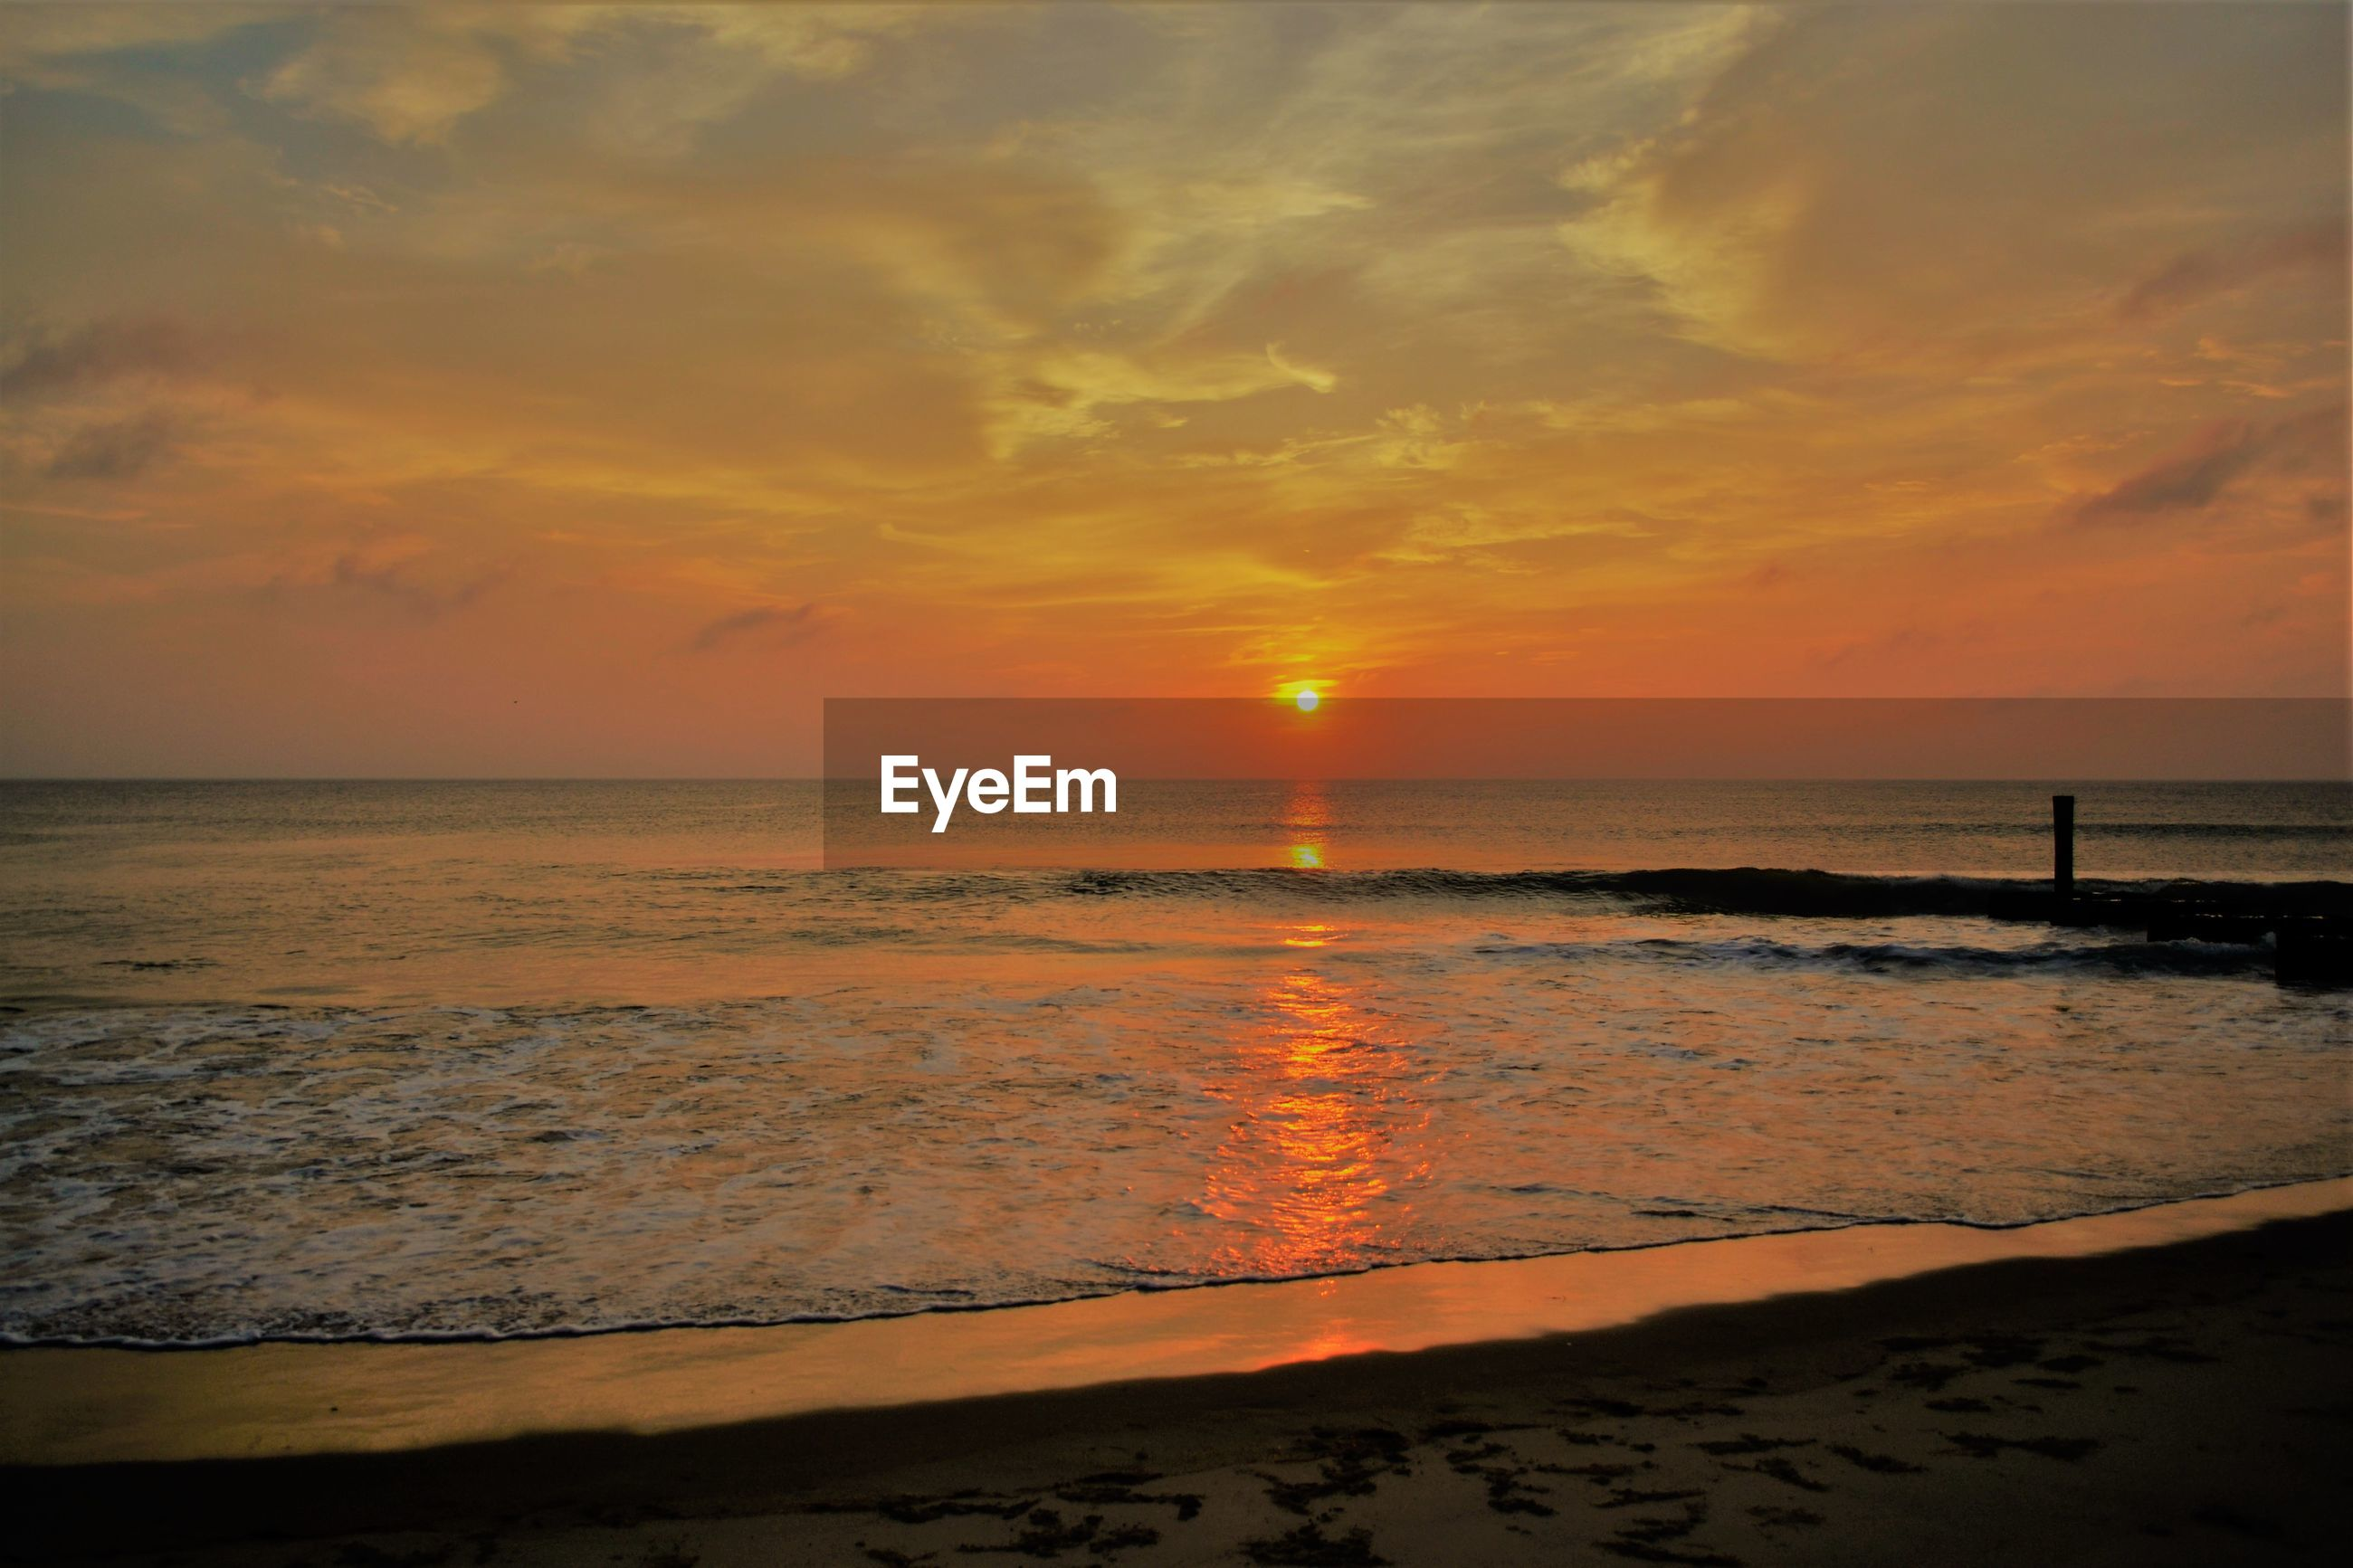 SCENIC VIEW OF SEA AGAINST CLOUDY SKY DURING SUNSET